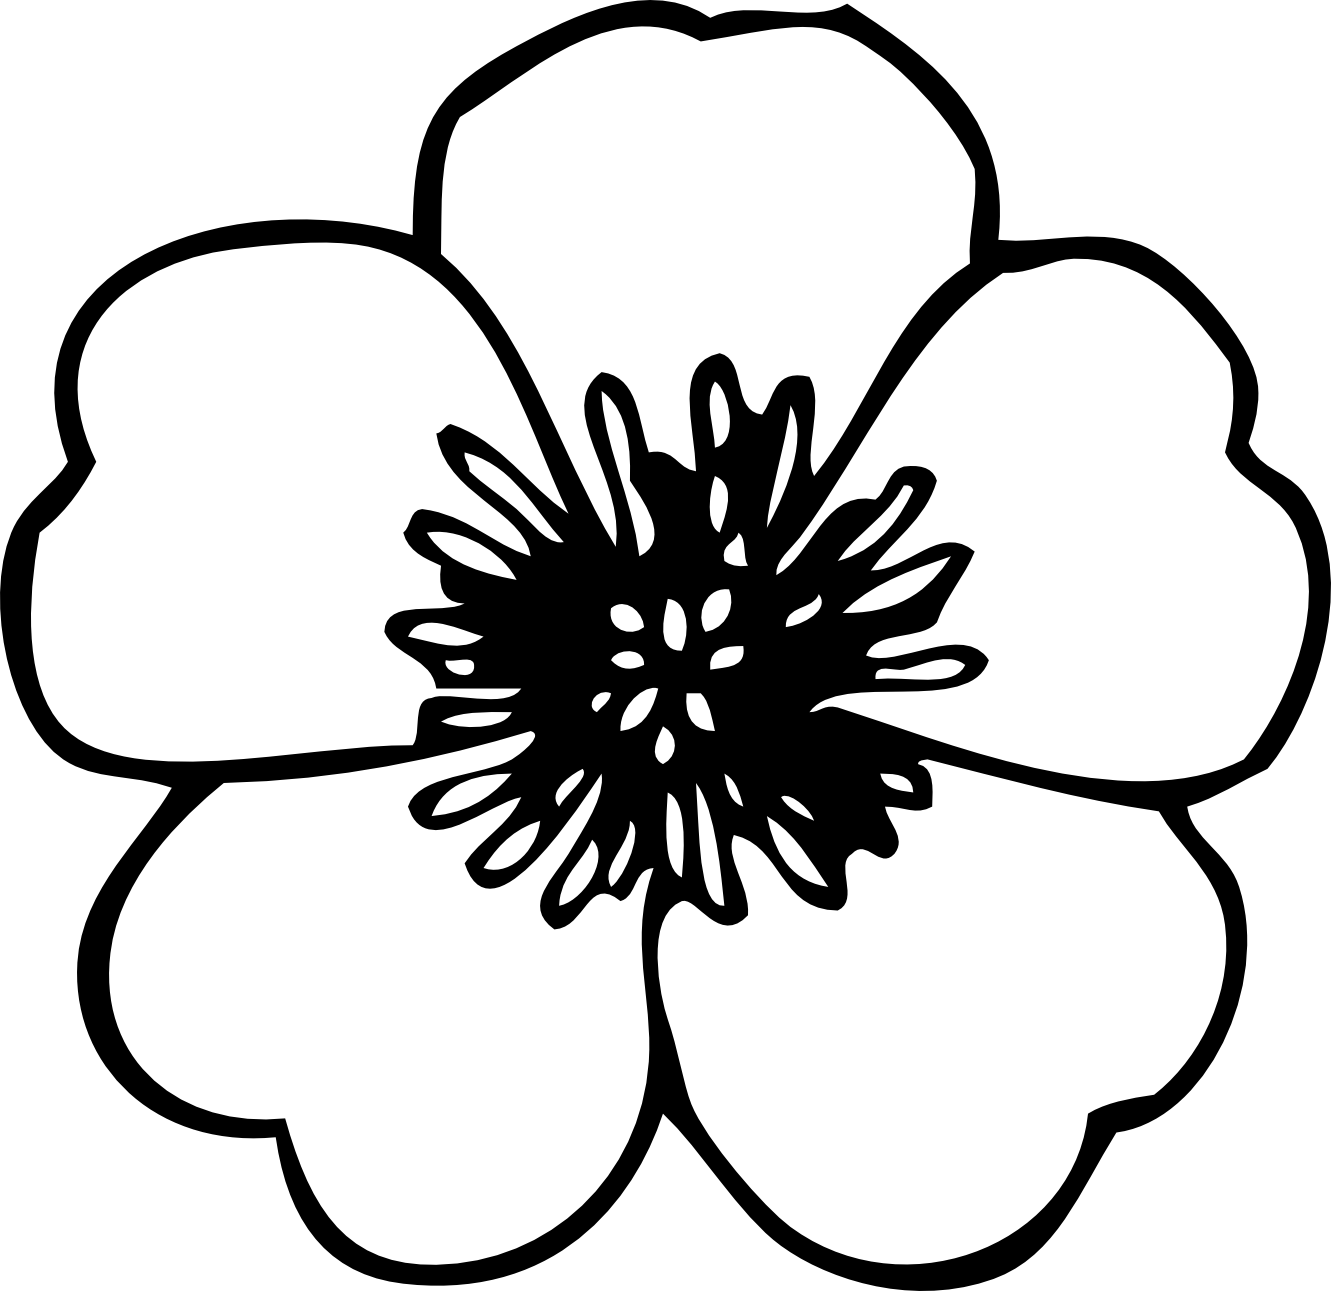 Coloring Black and White Flower Background